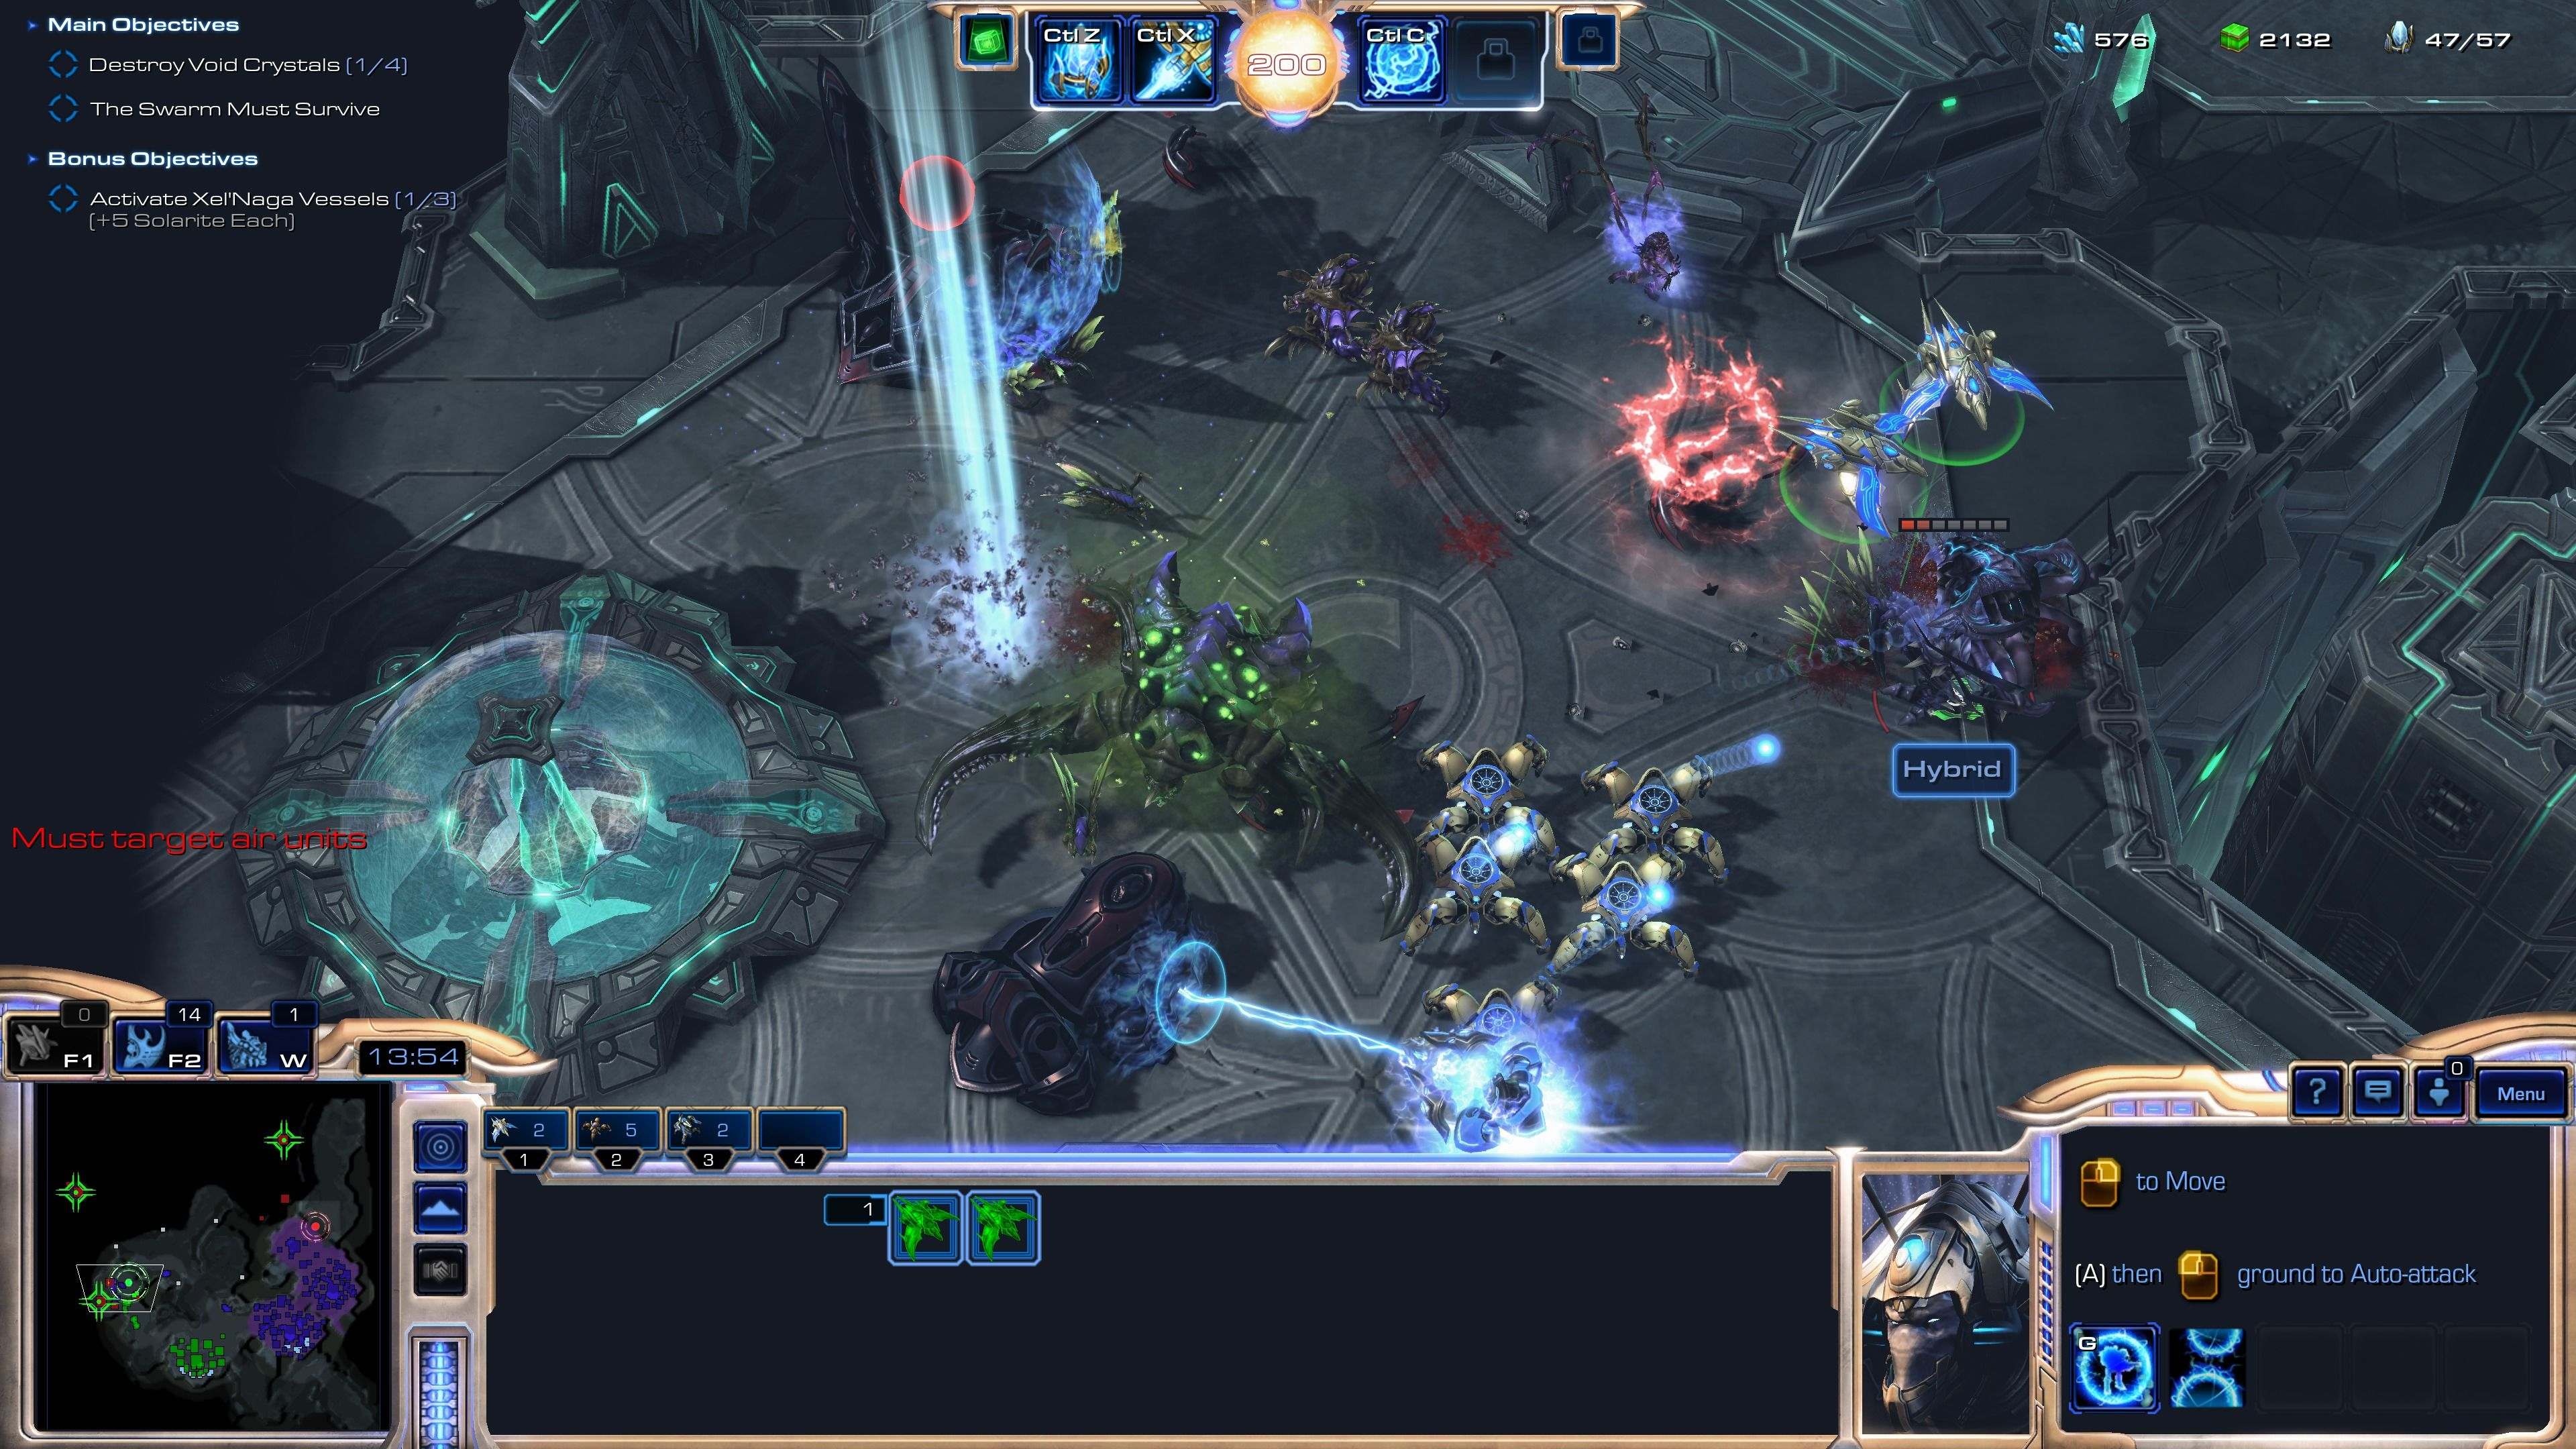 StarCraft II: Legacy of the Void Windows Kerrigan and her swarm, buying us time to destroy Void Crystals